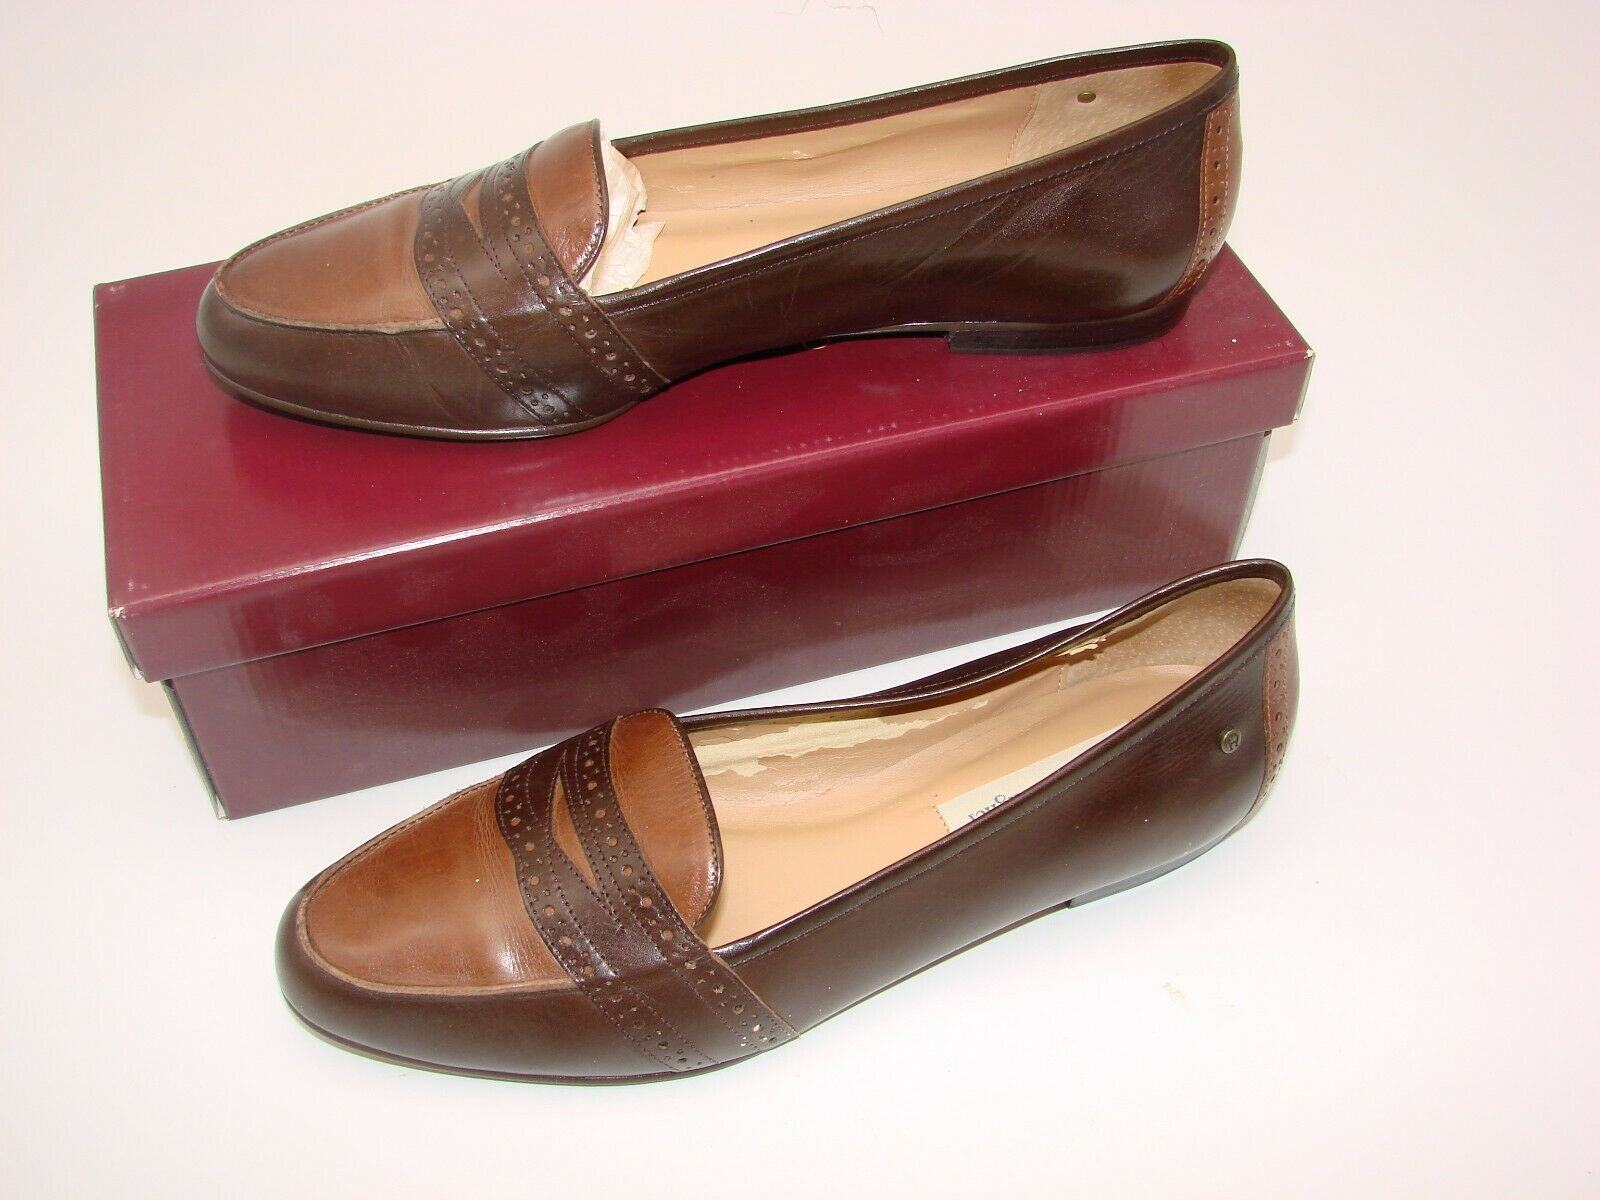 EUC Etienne Aigner Women's Two Tone  Slip on Loafer Casual, Career Size 81/2M